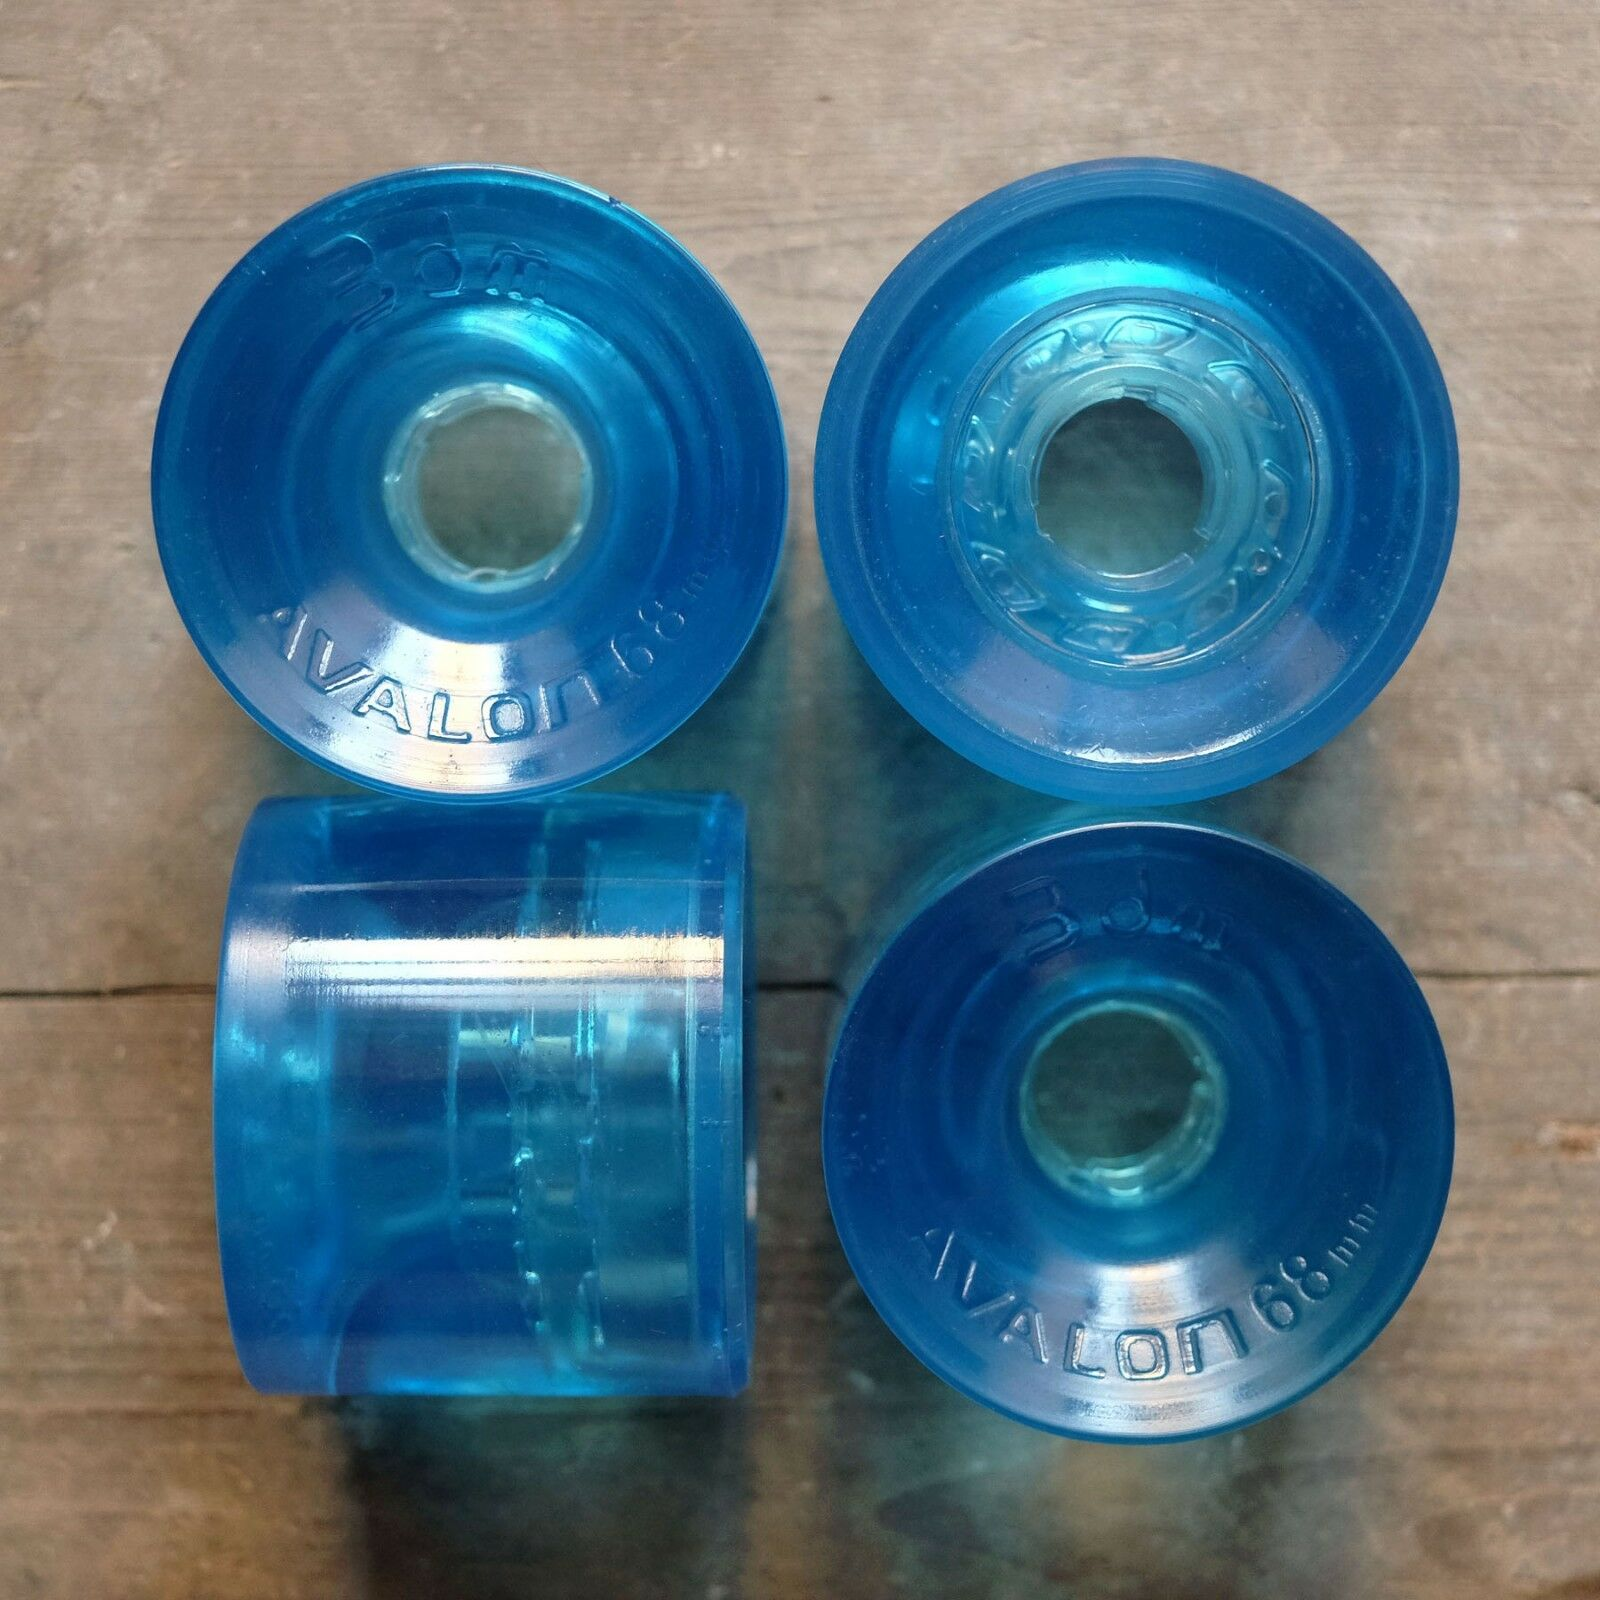 Seismic 3DM Avalon Longboard Slalom Wheels - 68mm 80a (bluee)